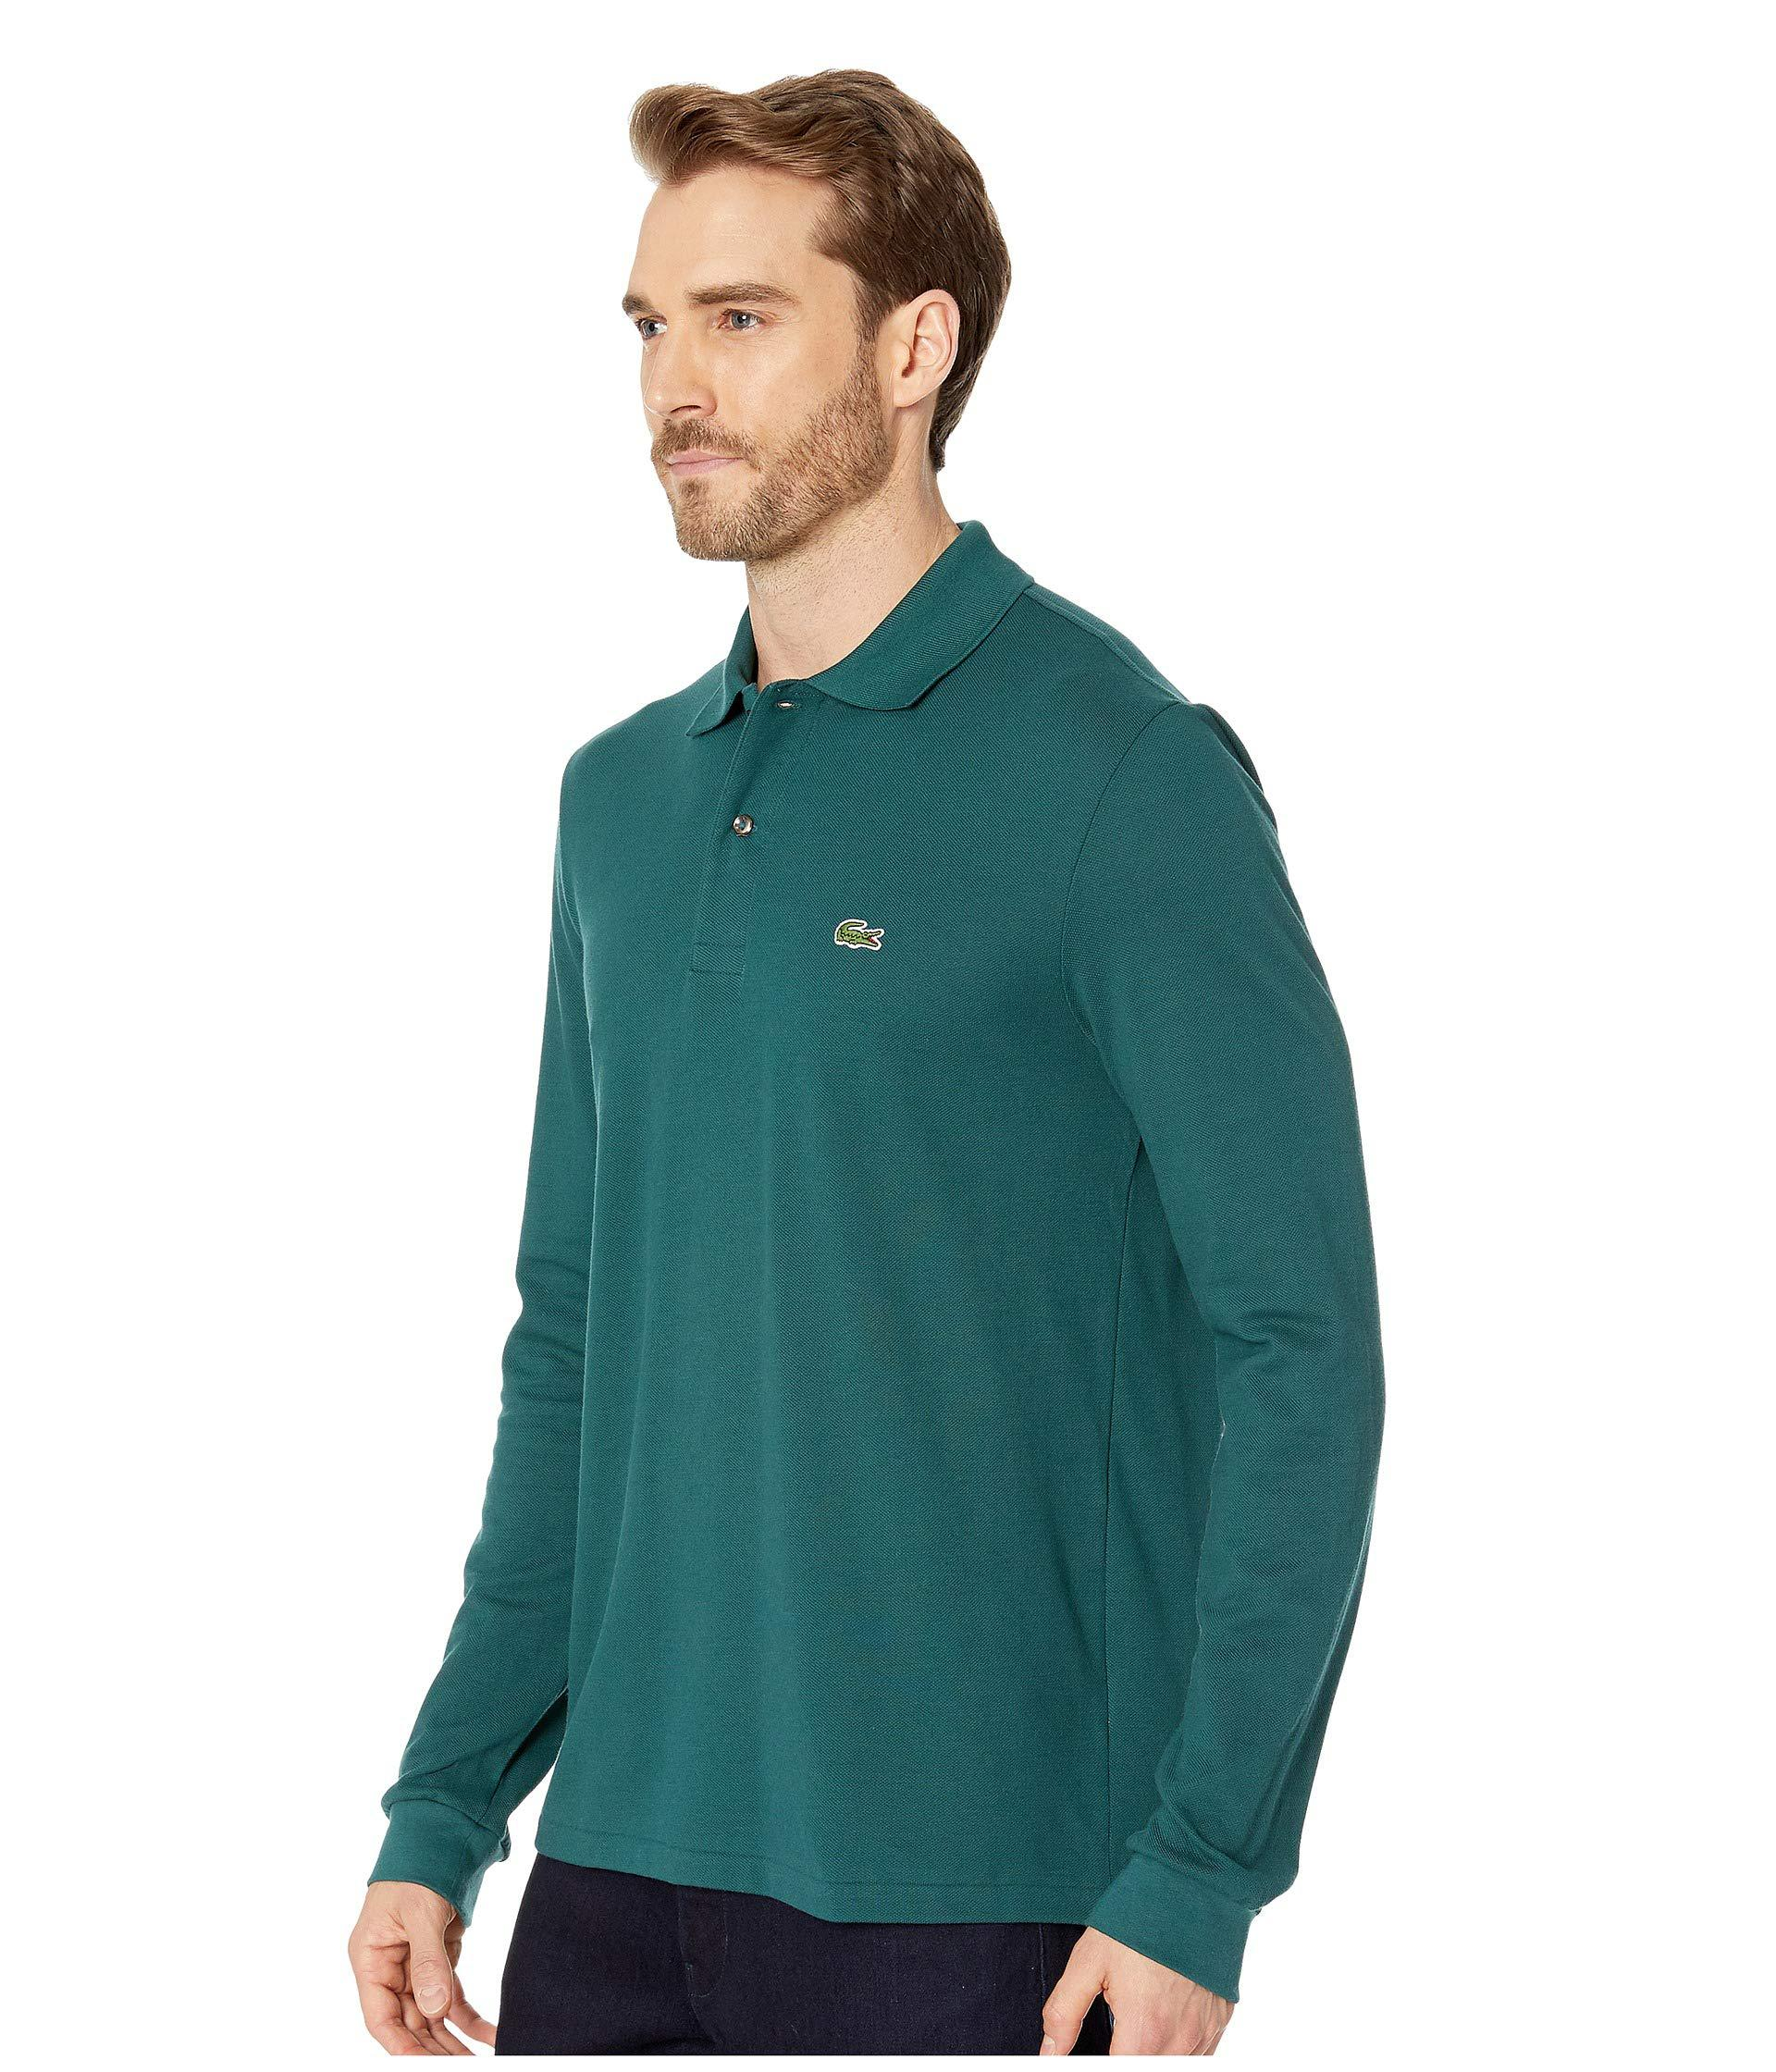 80ef1fb1 Lyst - Lacoste Long Sleeve Classic Pique Polo Shirt (navy Blue) Men's Long  Sleeve Pullover in Green for Men